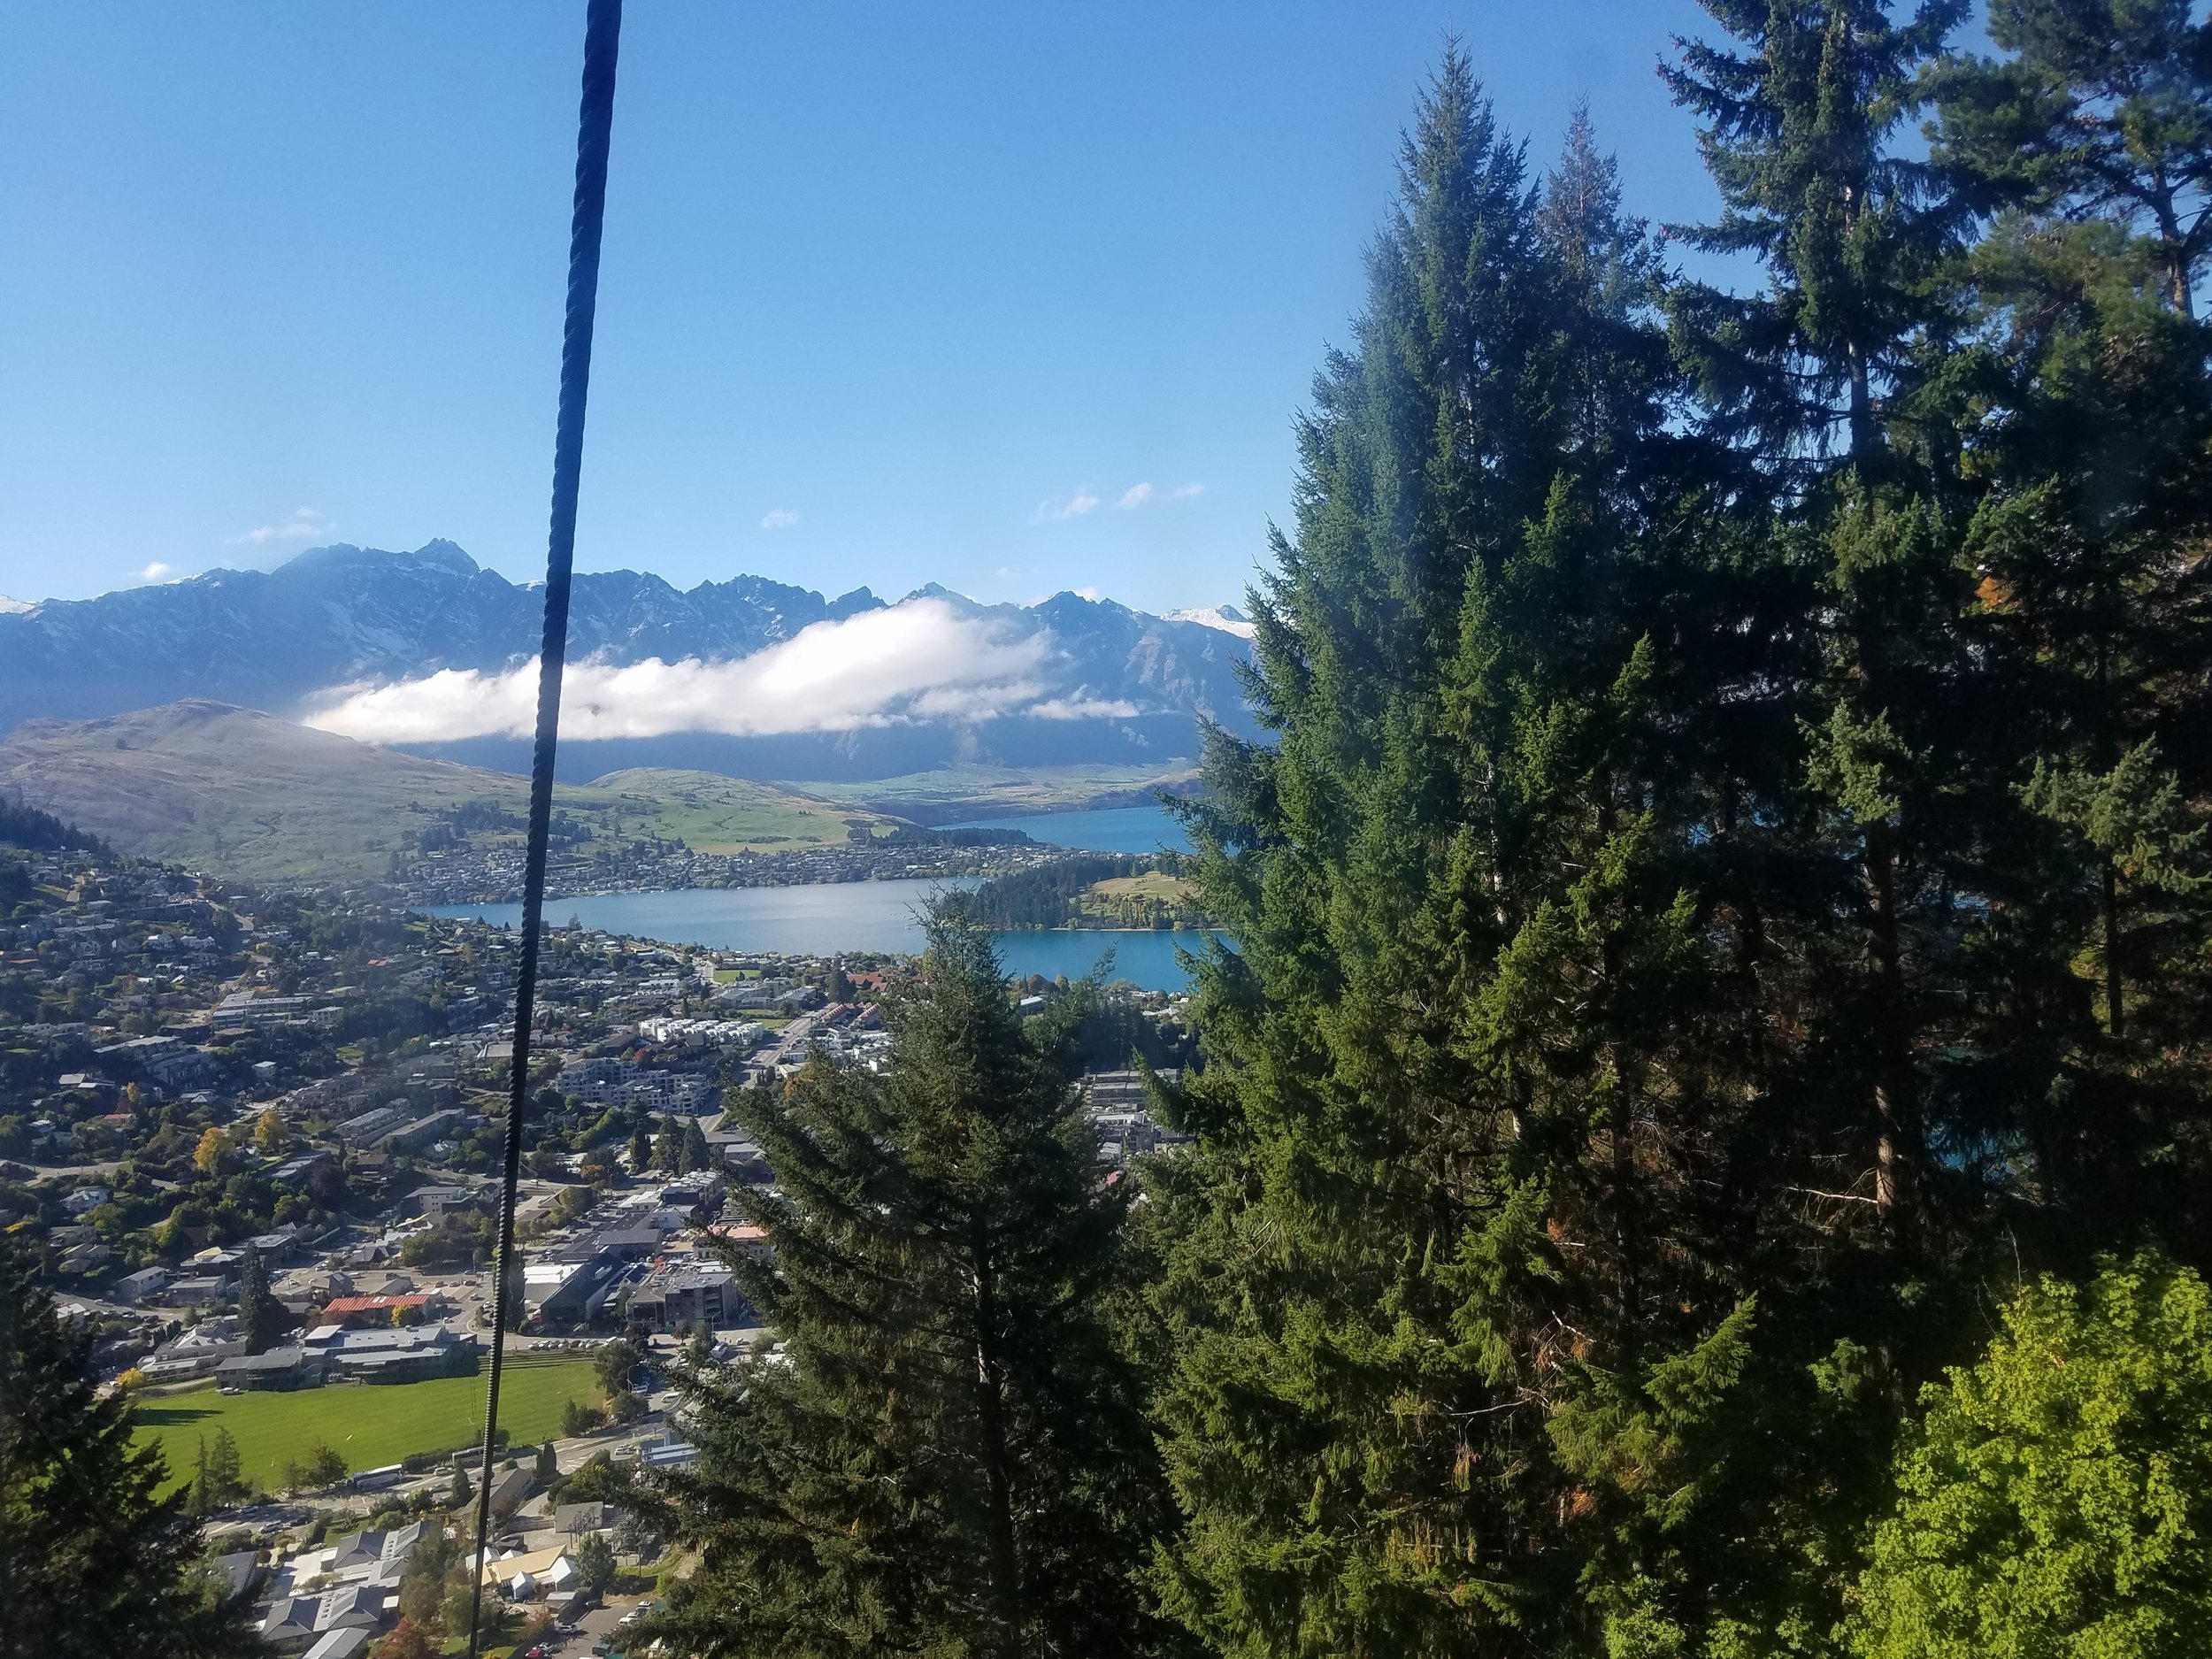 Gondola view west. The Remarkables cut the distant horizon.